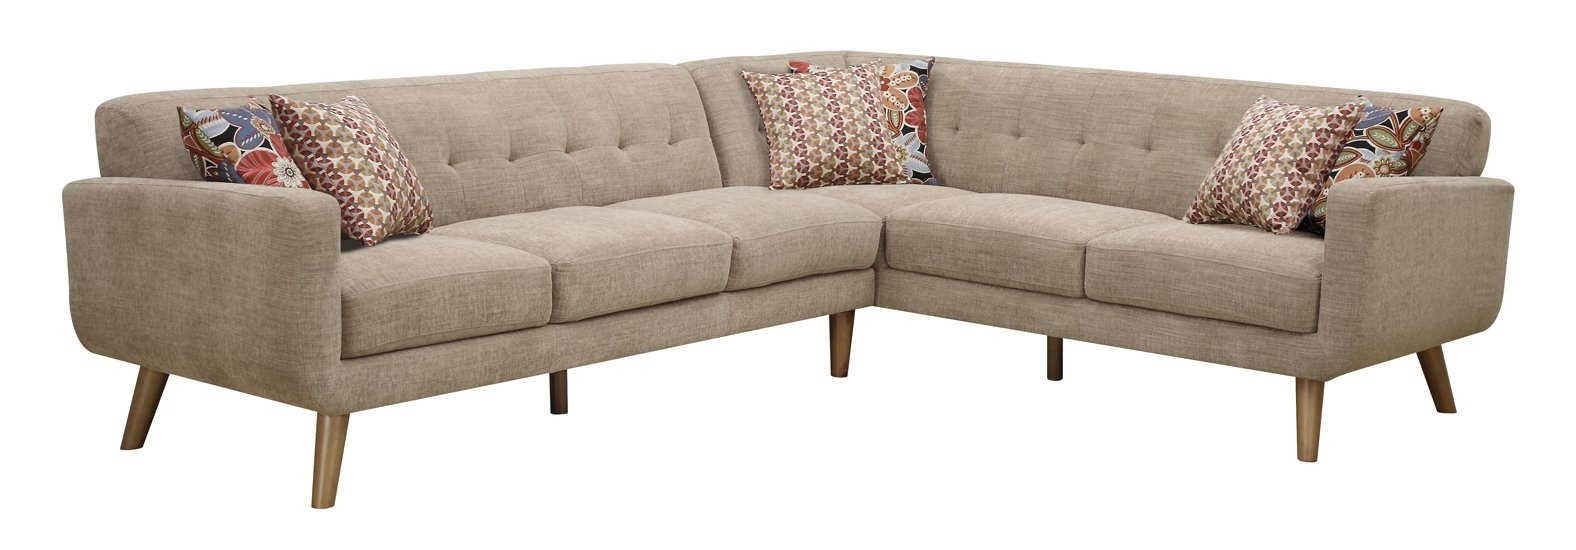 Kerri 2 Piece Sectional Wlaf Chaise Qty – Home Pictures Ideas For Malbry Point 3 Piece Sectionals With Laf Chaise (Photo 14 of 25)